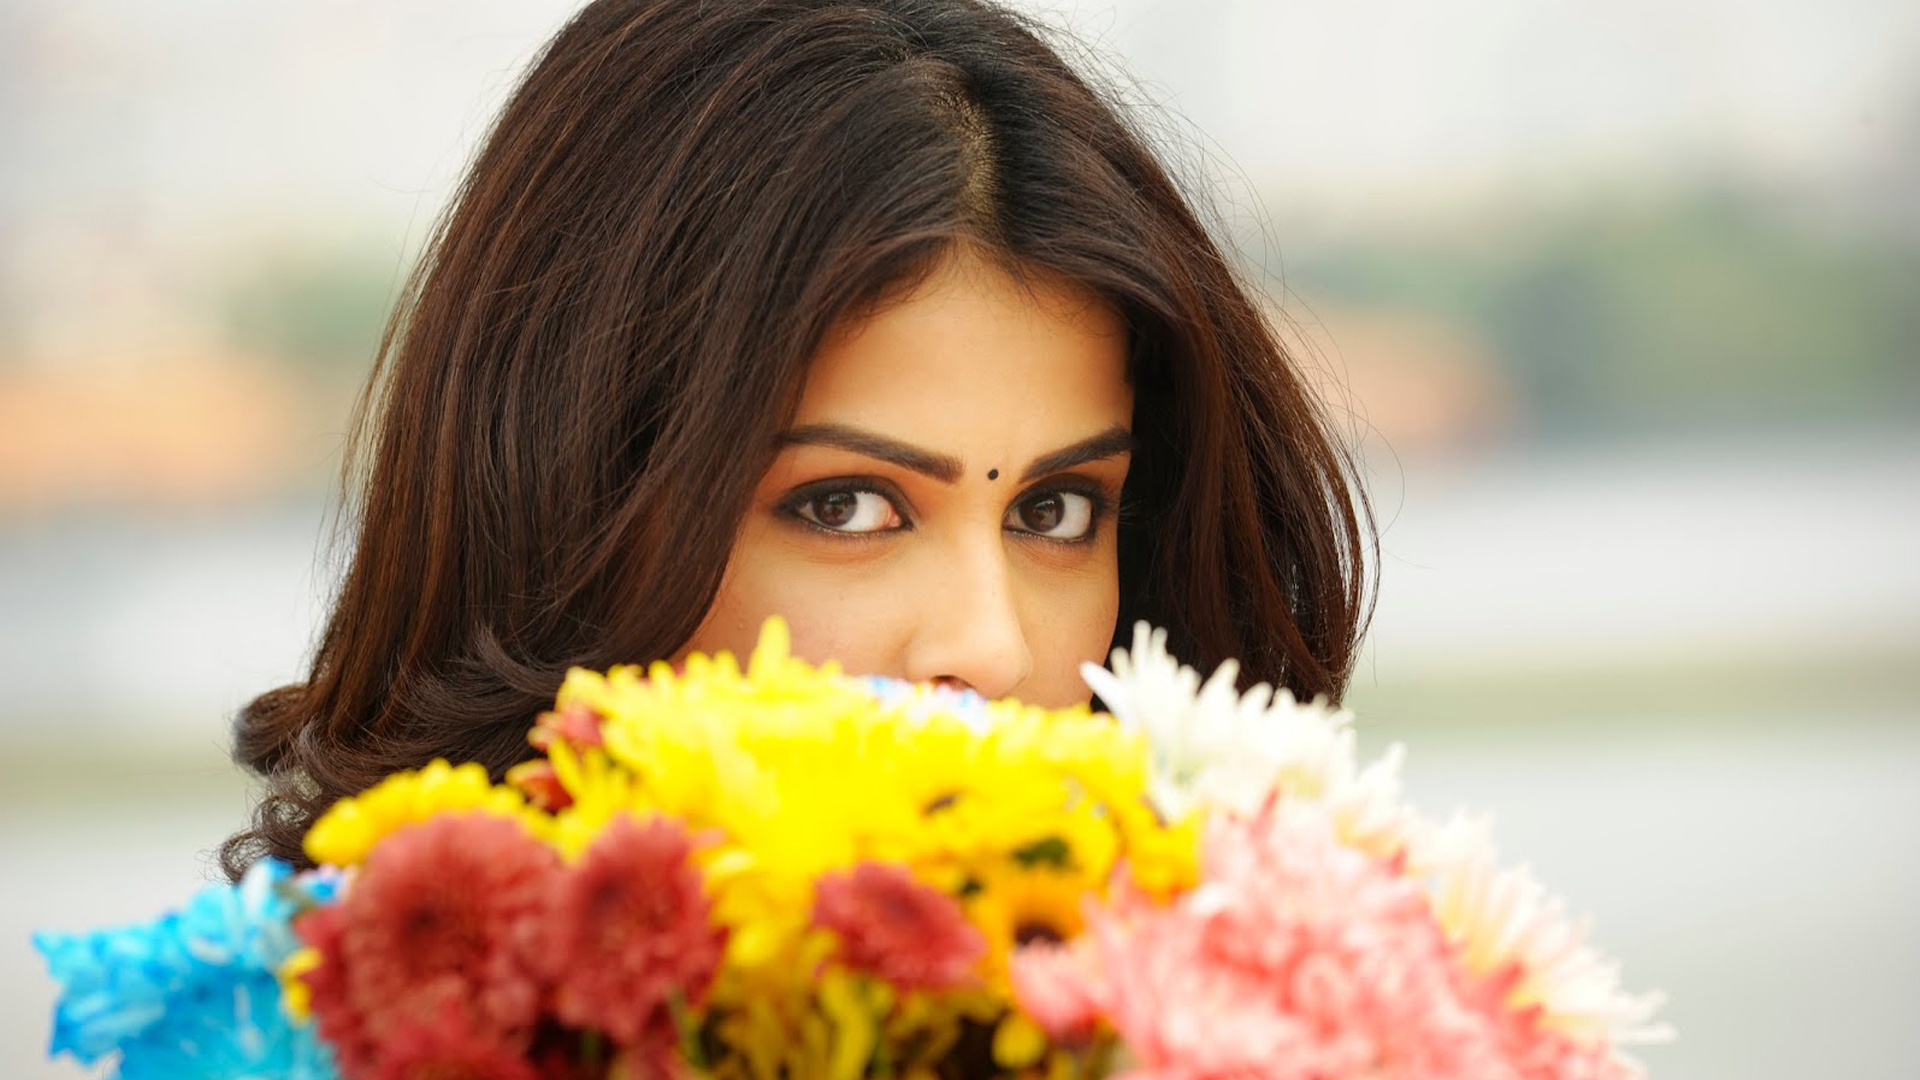 genelia dsouza behind flowers wallpaper background